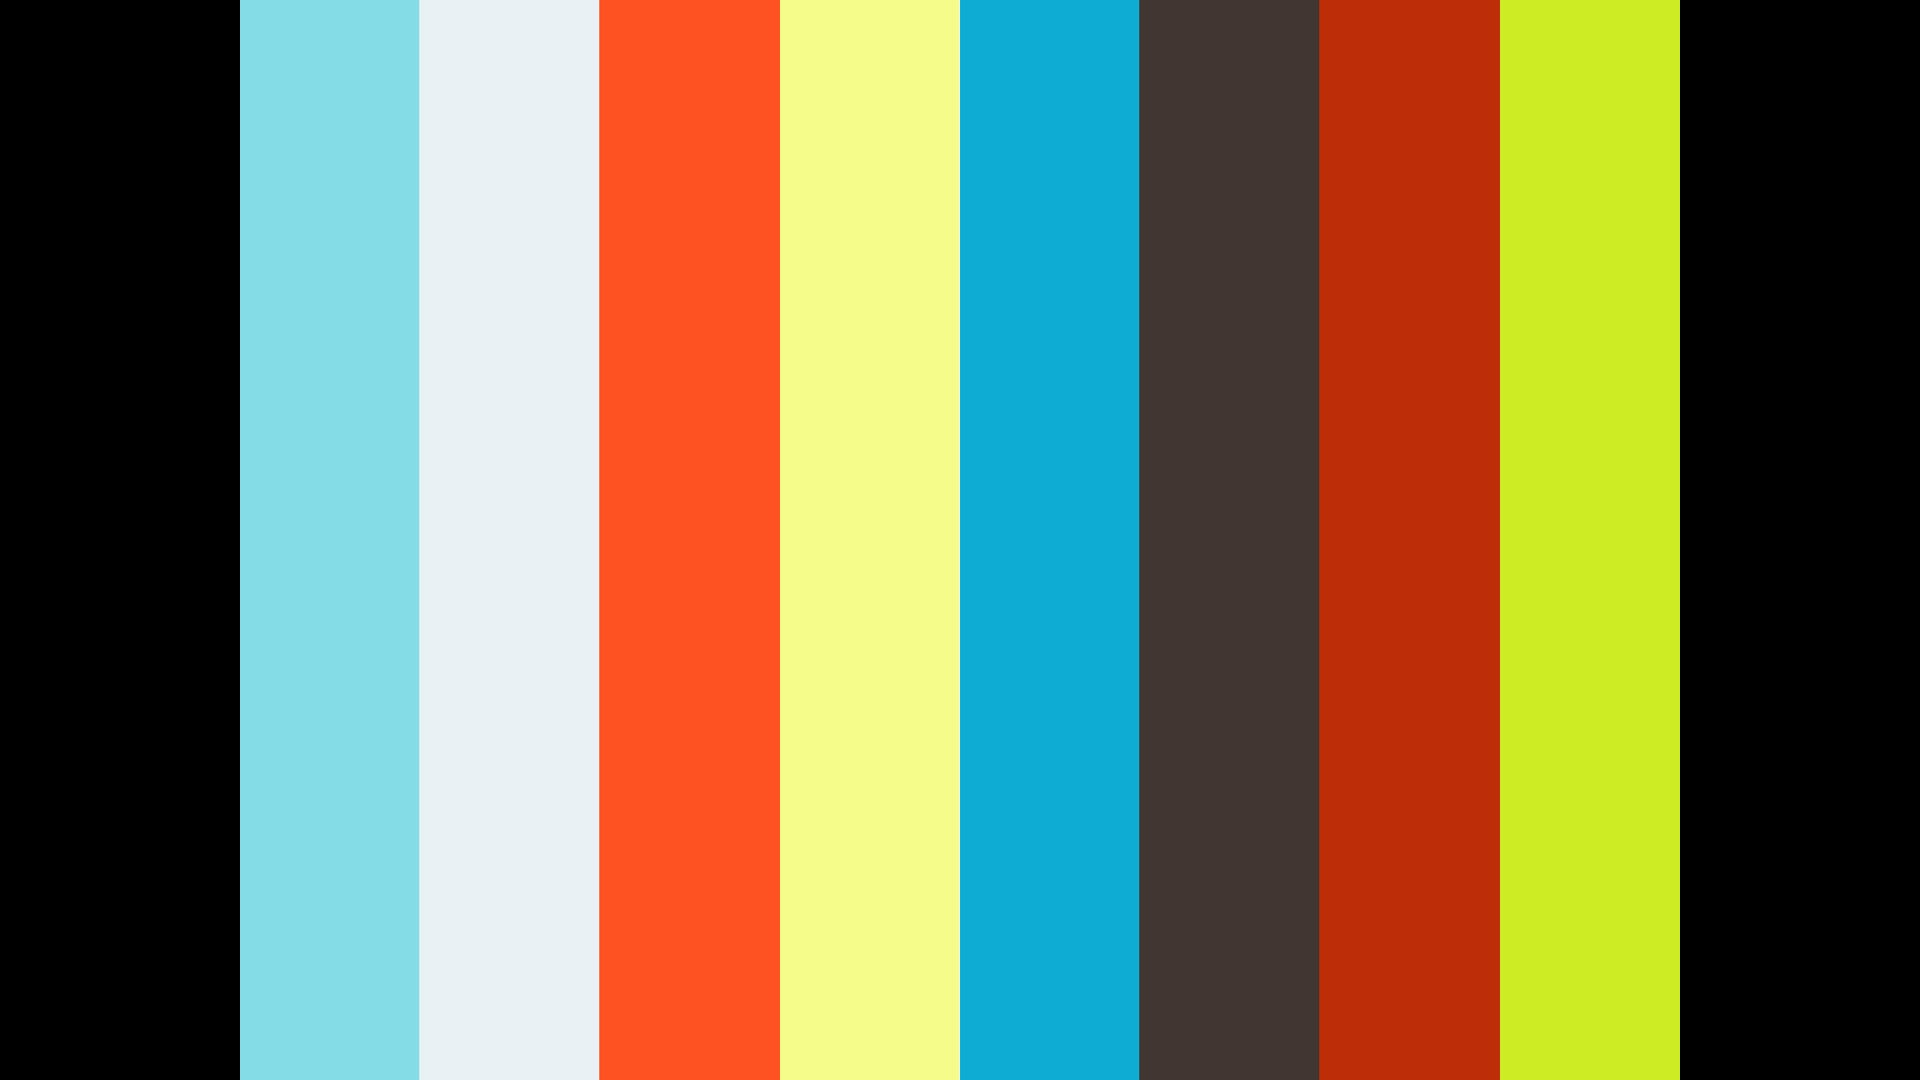 Why Edufolios - How does it work?